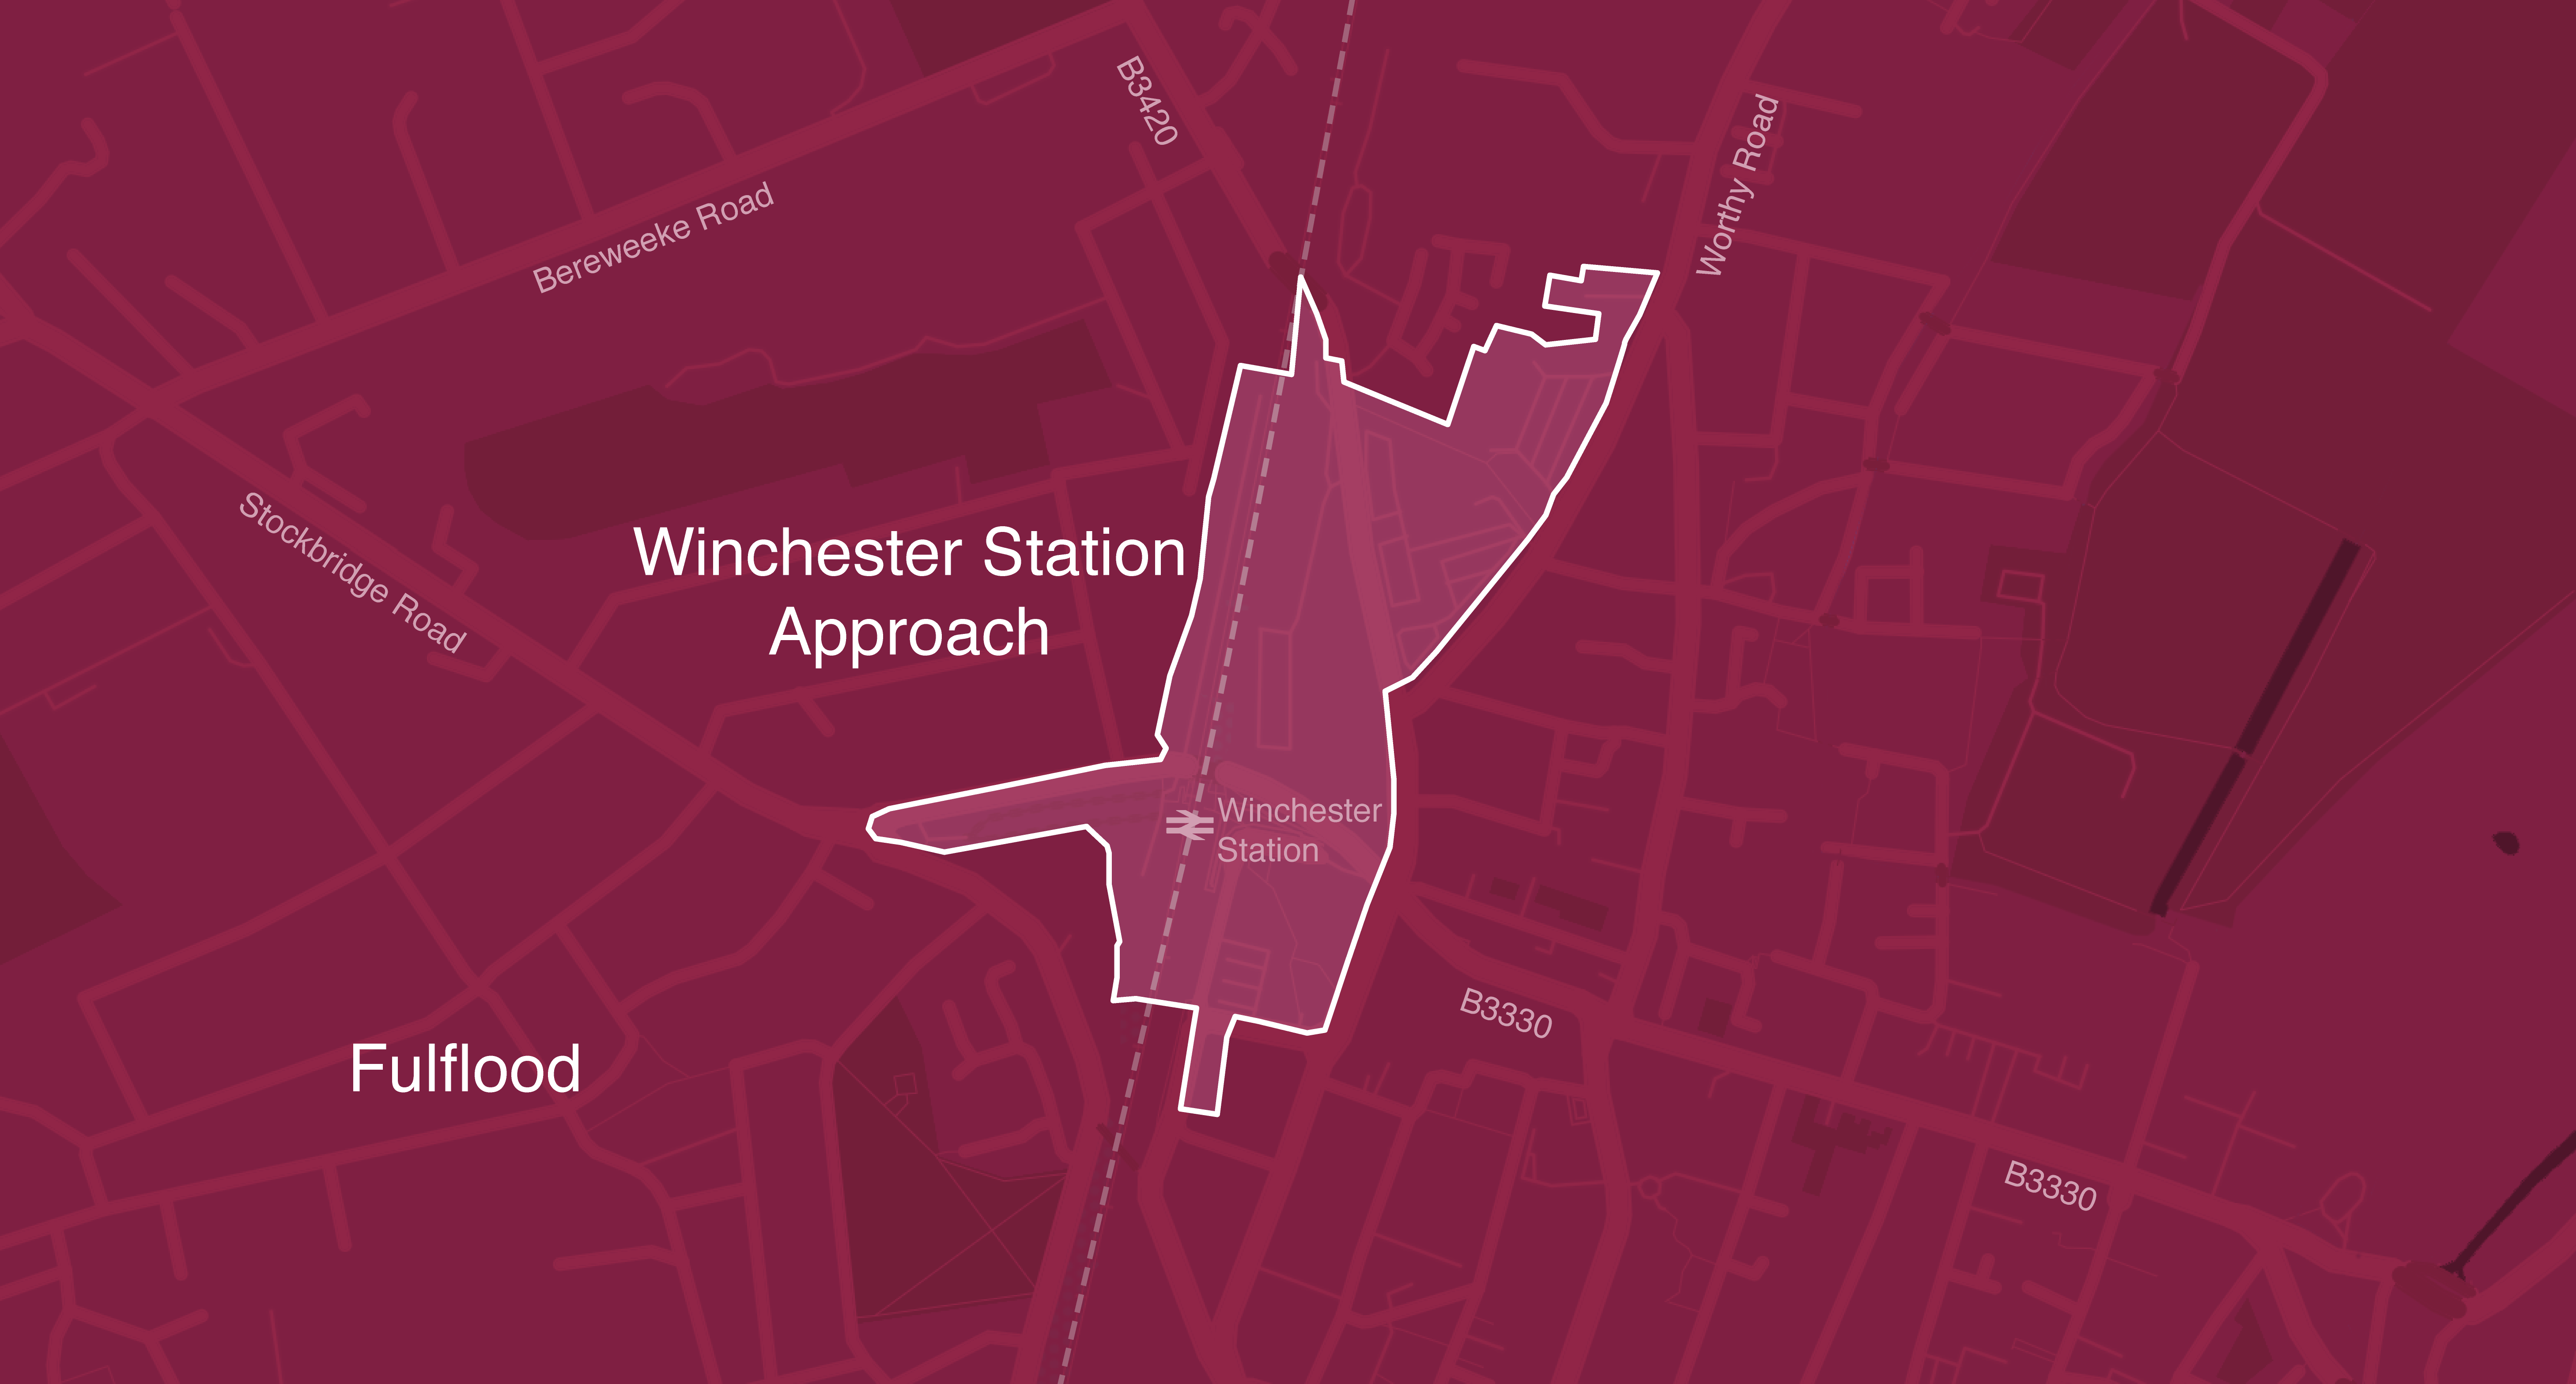 5486 Winchester Station Approach 1400px by 752px 01